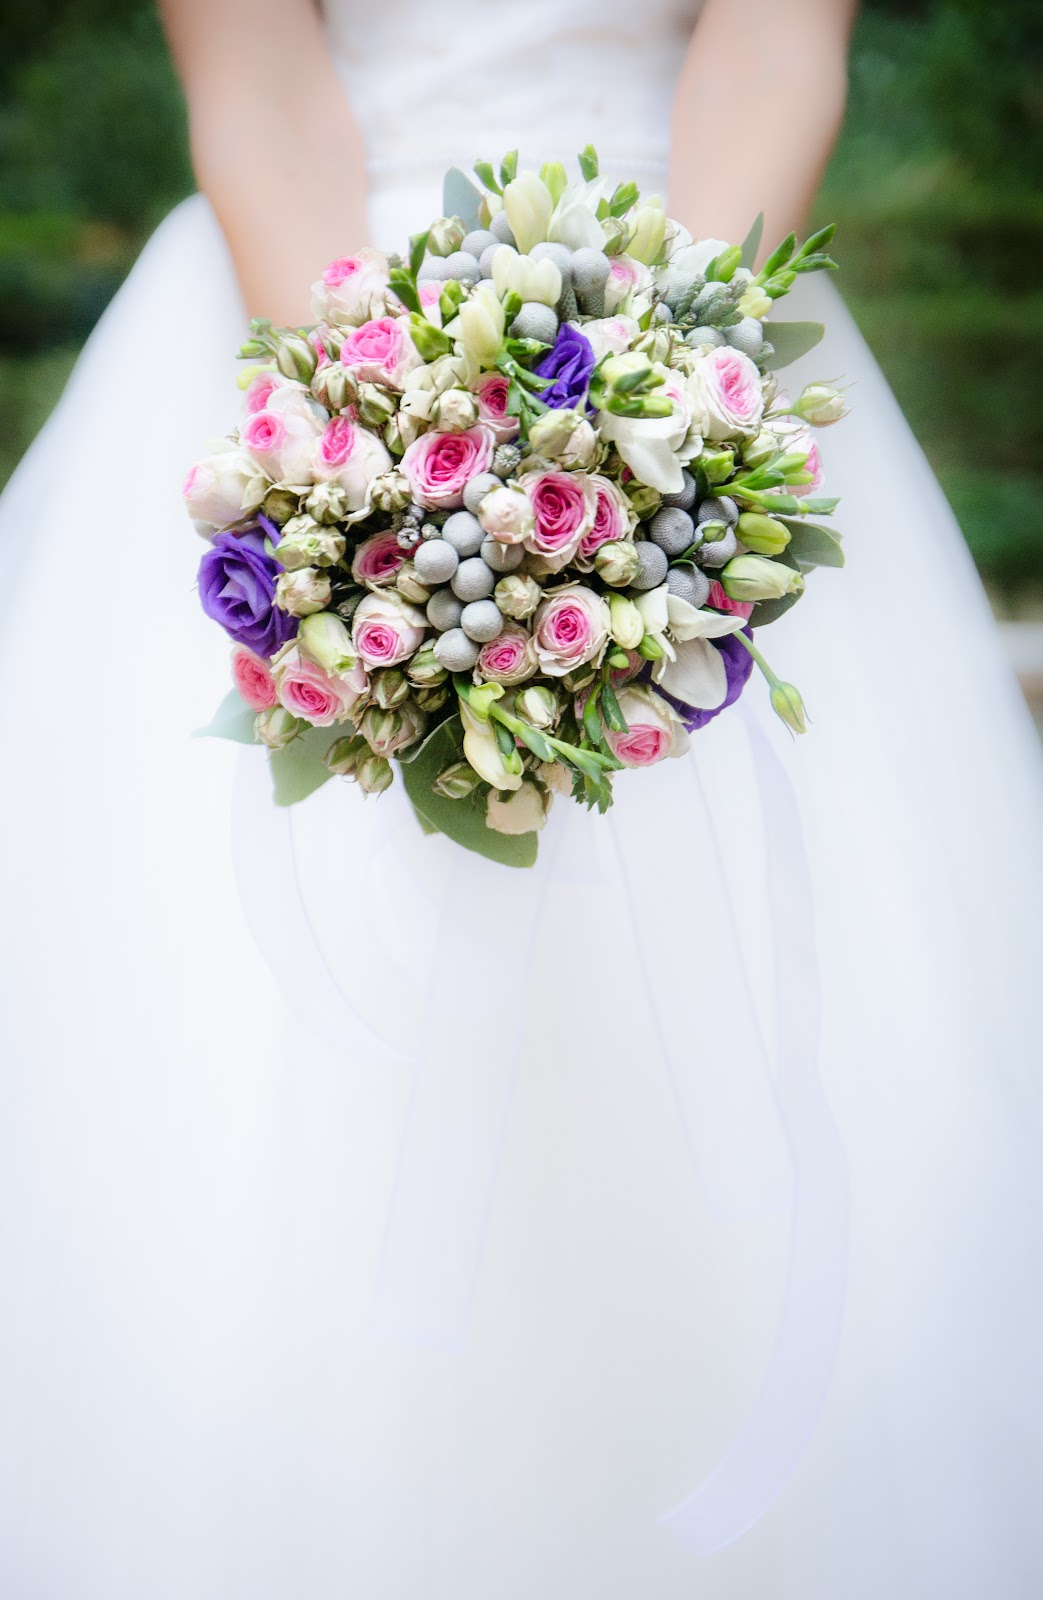 Quinceaera Bouquets Ideas And Inspiration For Your Quince